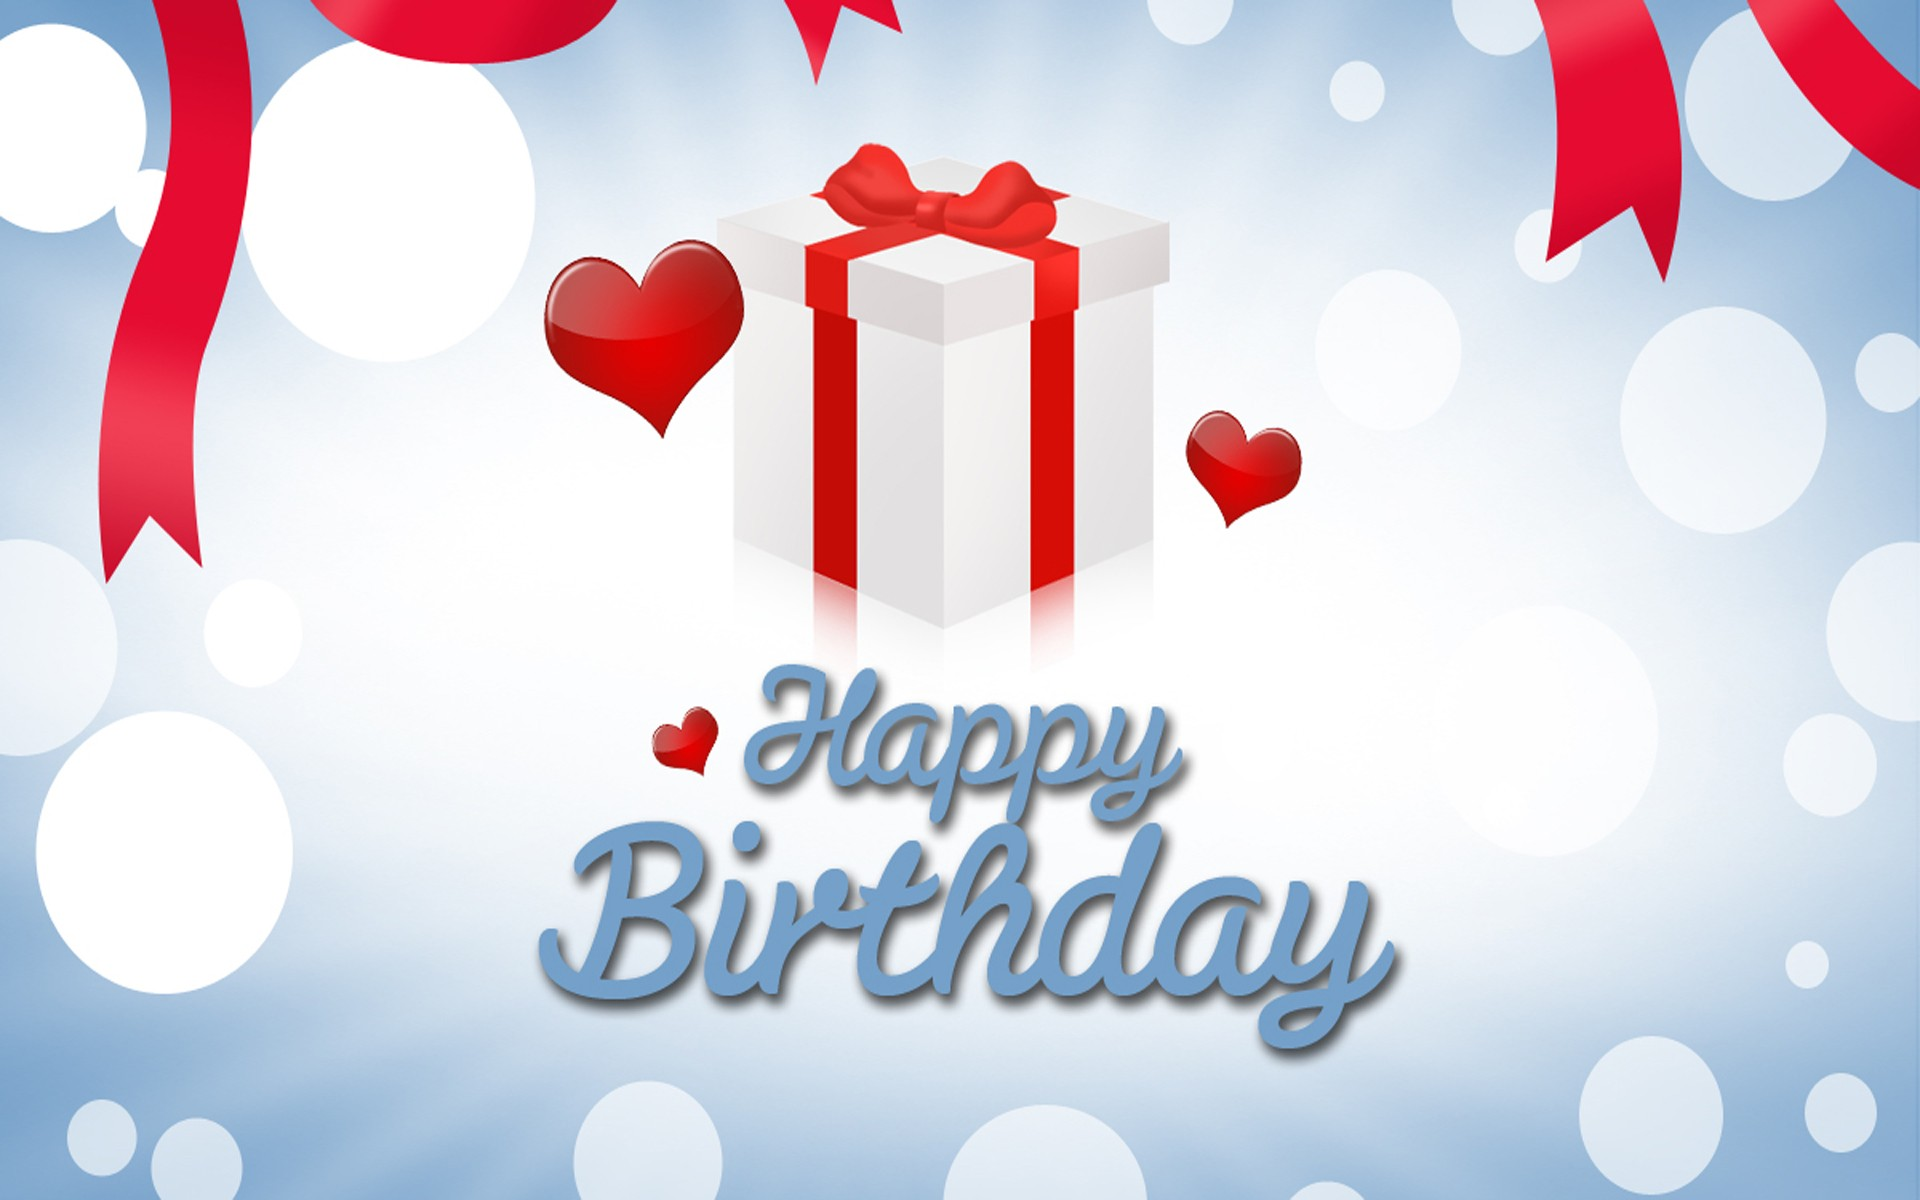 birthday wishes wallpaper hd ; happy-birthday-wallpapers-free-download-8